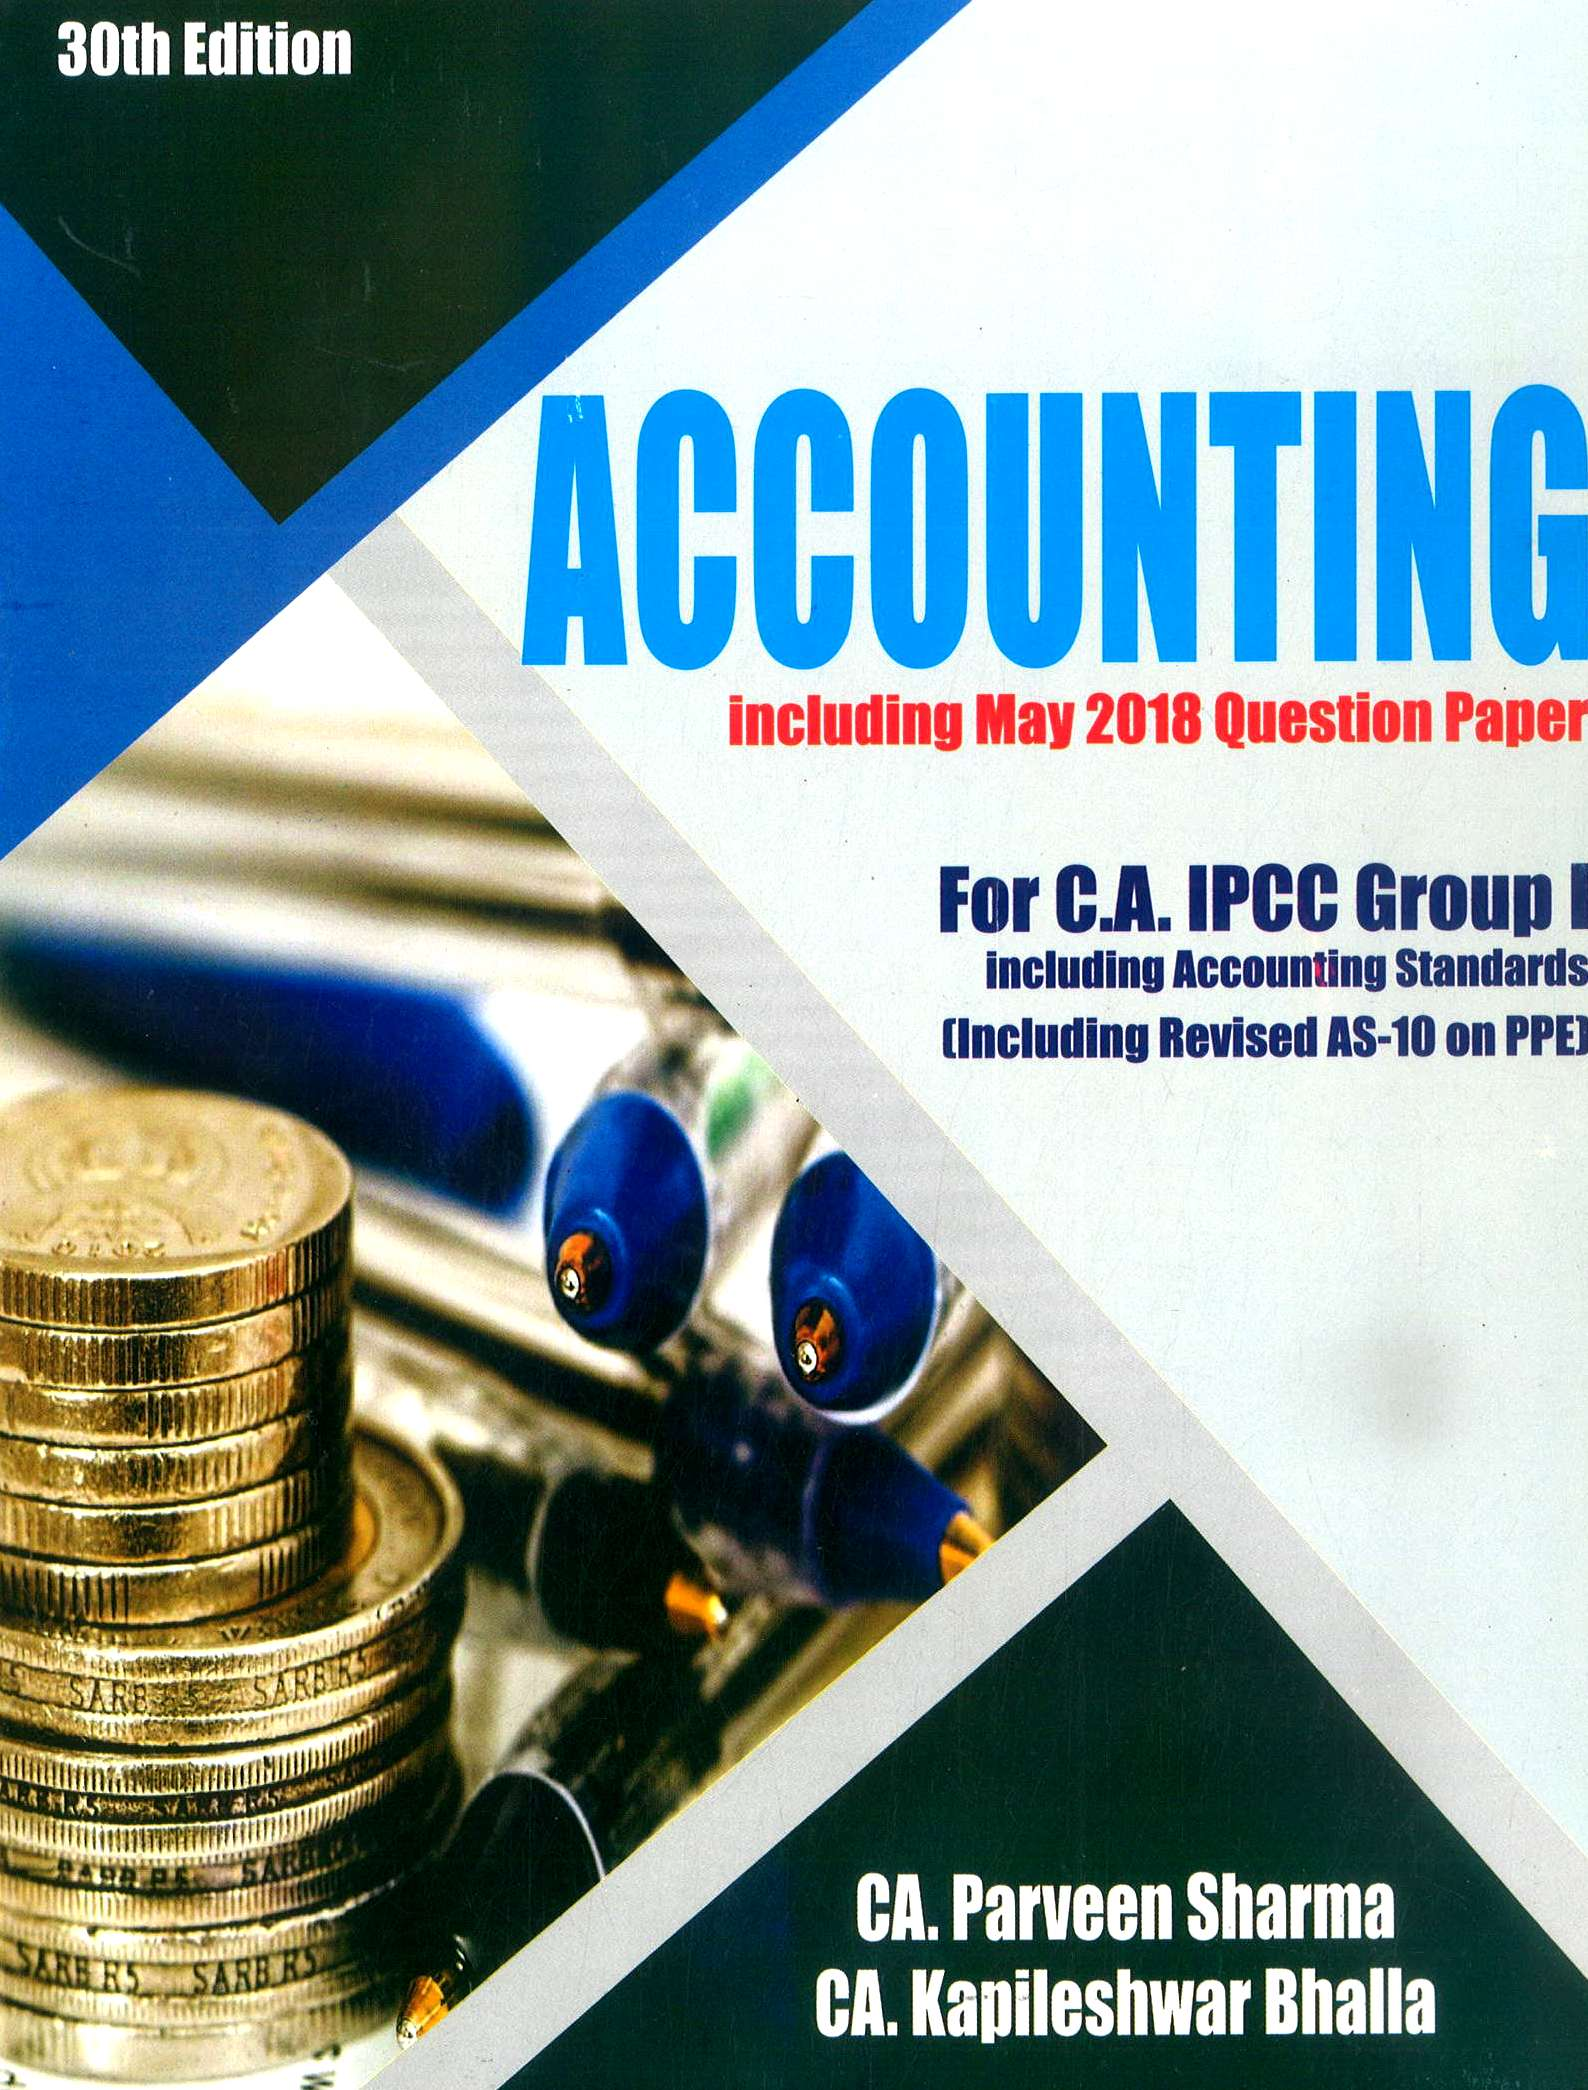 Pooja Law House Accounting including Accounting Standards Applicable for Nov 2018 (Old Syllabus) Exam for CA IPCC Group I by CA Parveen Sharma and CA Kapileshwar Bhalla (Pooja Law House Publishing) Edition 30th, 2018